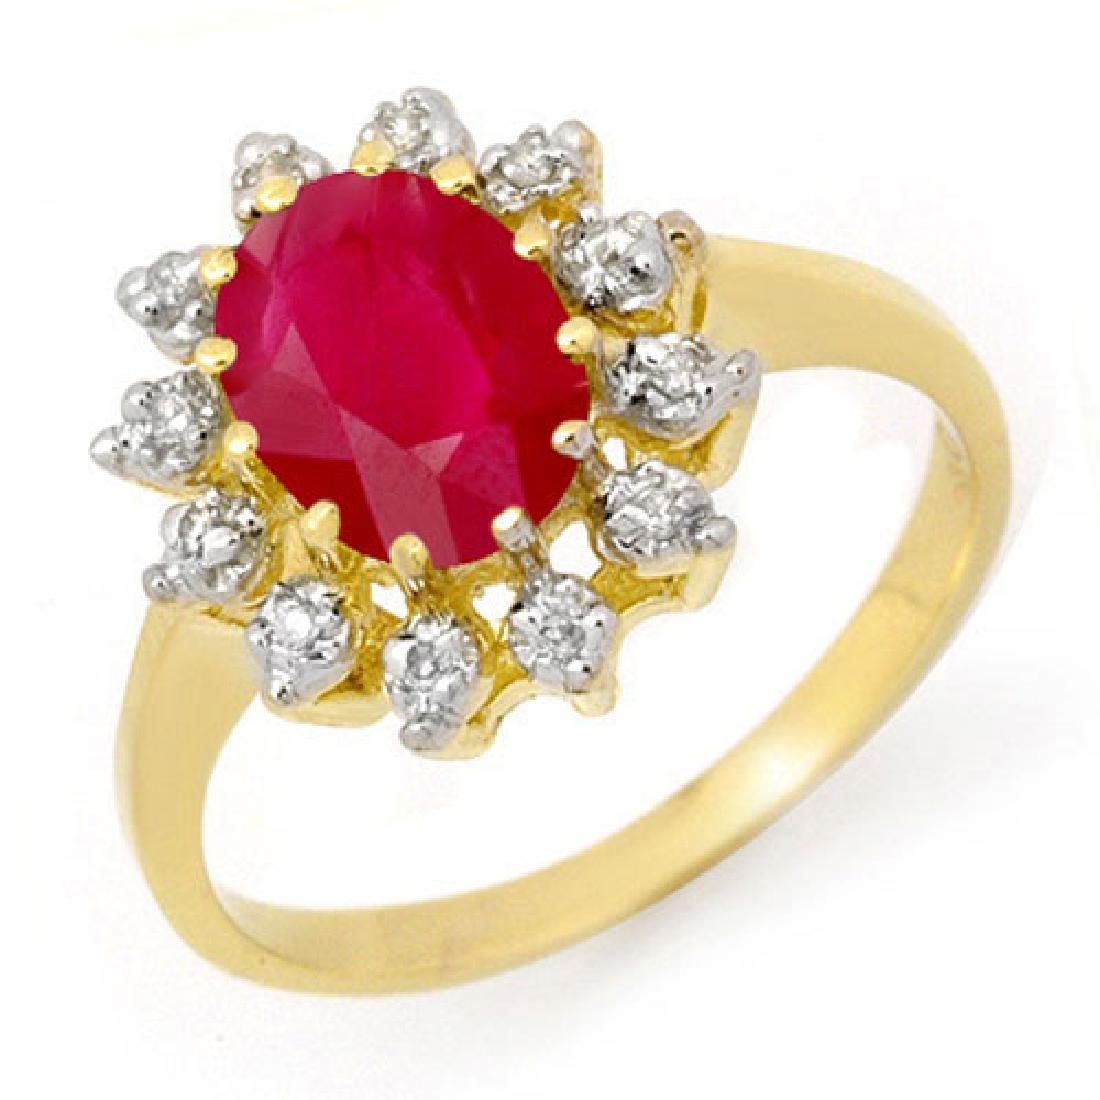 1.22 CTW Ruby & Diamond Ring 10K Yellow Gold